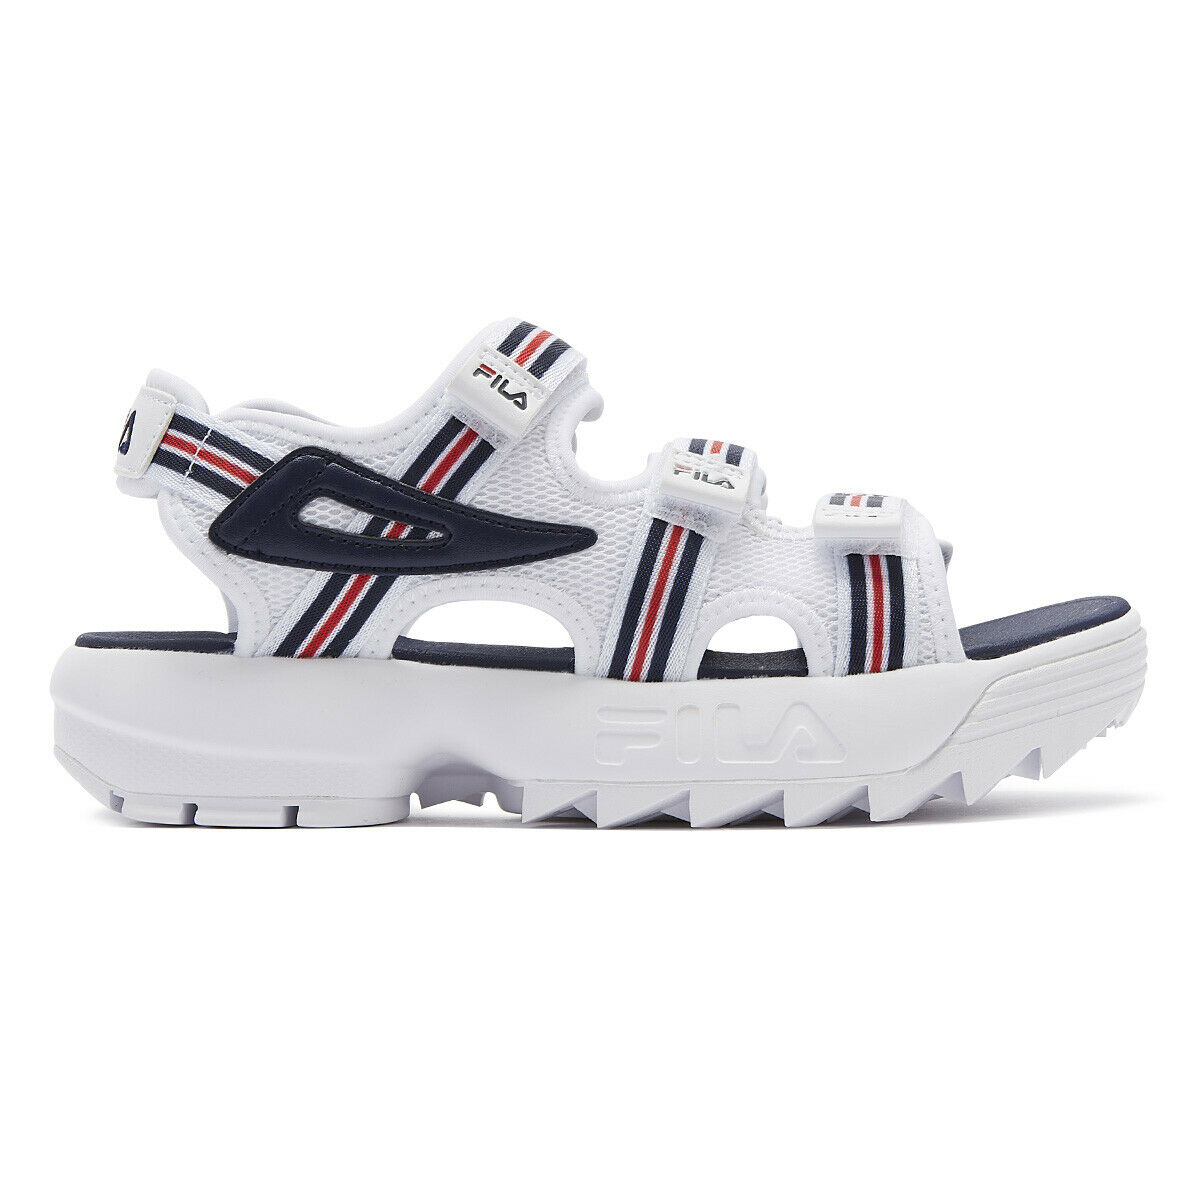 Fila Disruptor Hs Womens White   Navy   Red Sandals Ladies Summer shoes